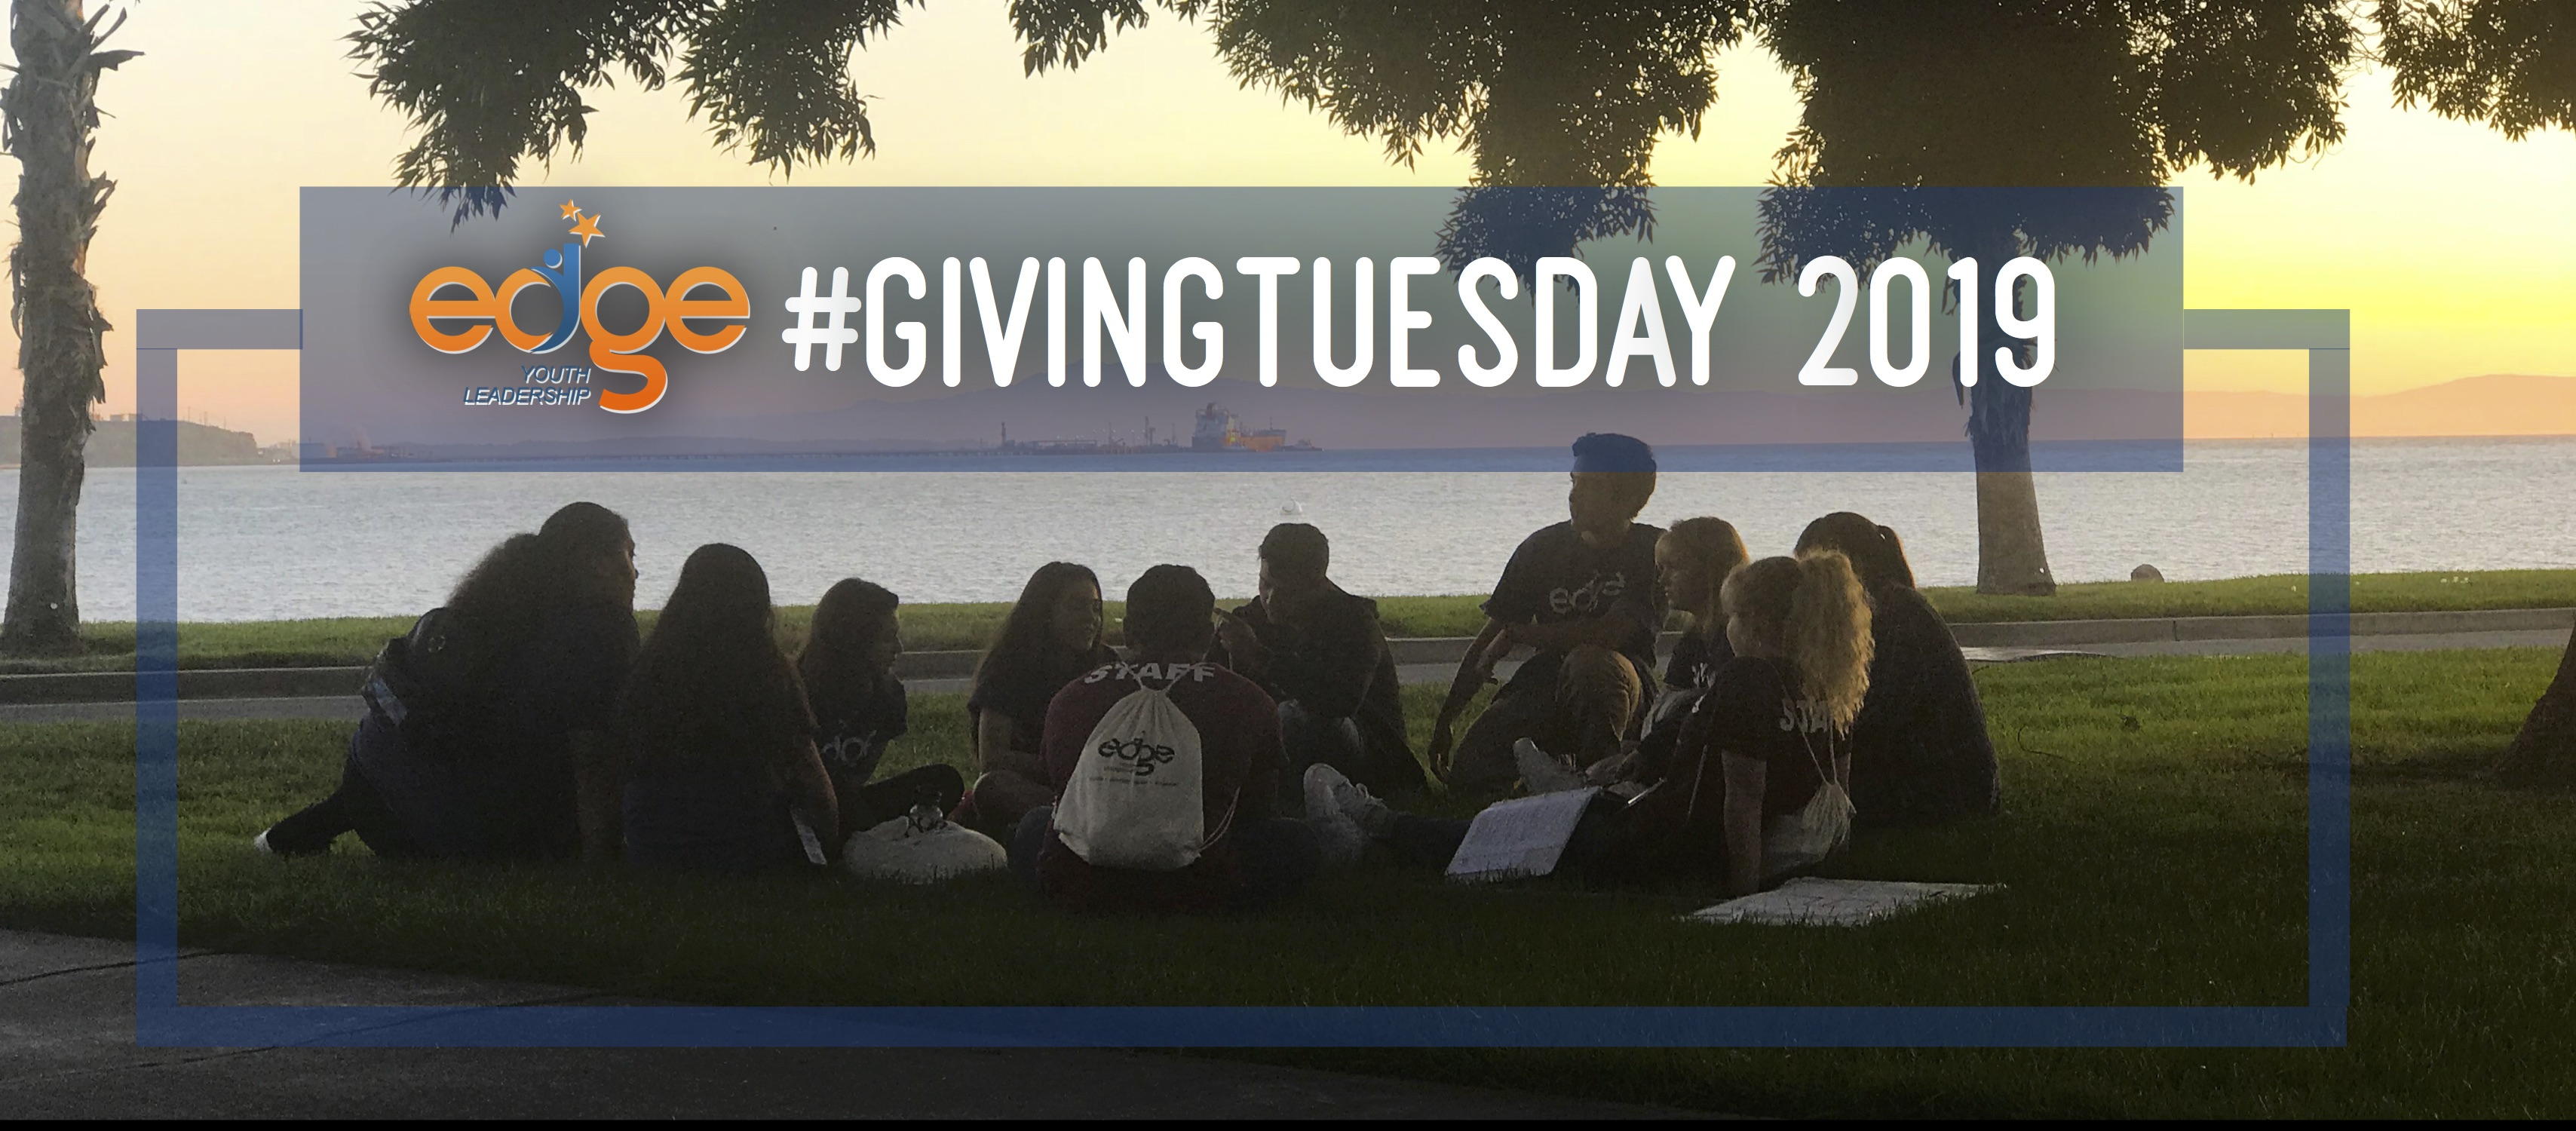 Dec 3rd is #GivingTuesday. It's a global giving moment to support the causes you love. Like us. Donations to US nonprofits on Dec 3rd could be matched up to $100K by Facebook starting 5am PST/8am EST! Mark your calendars.